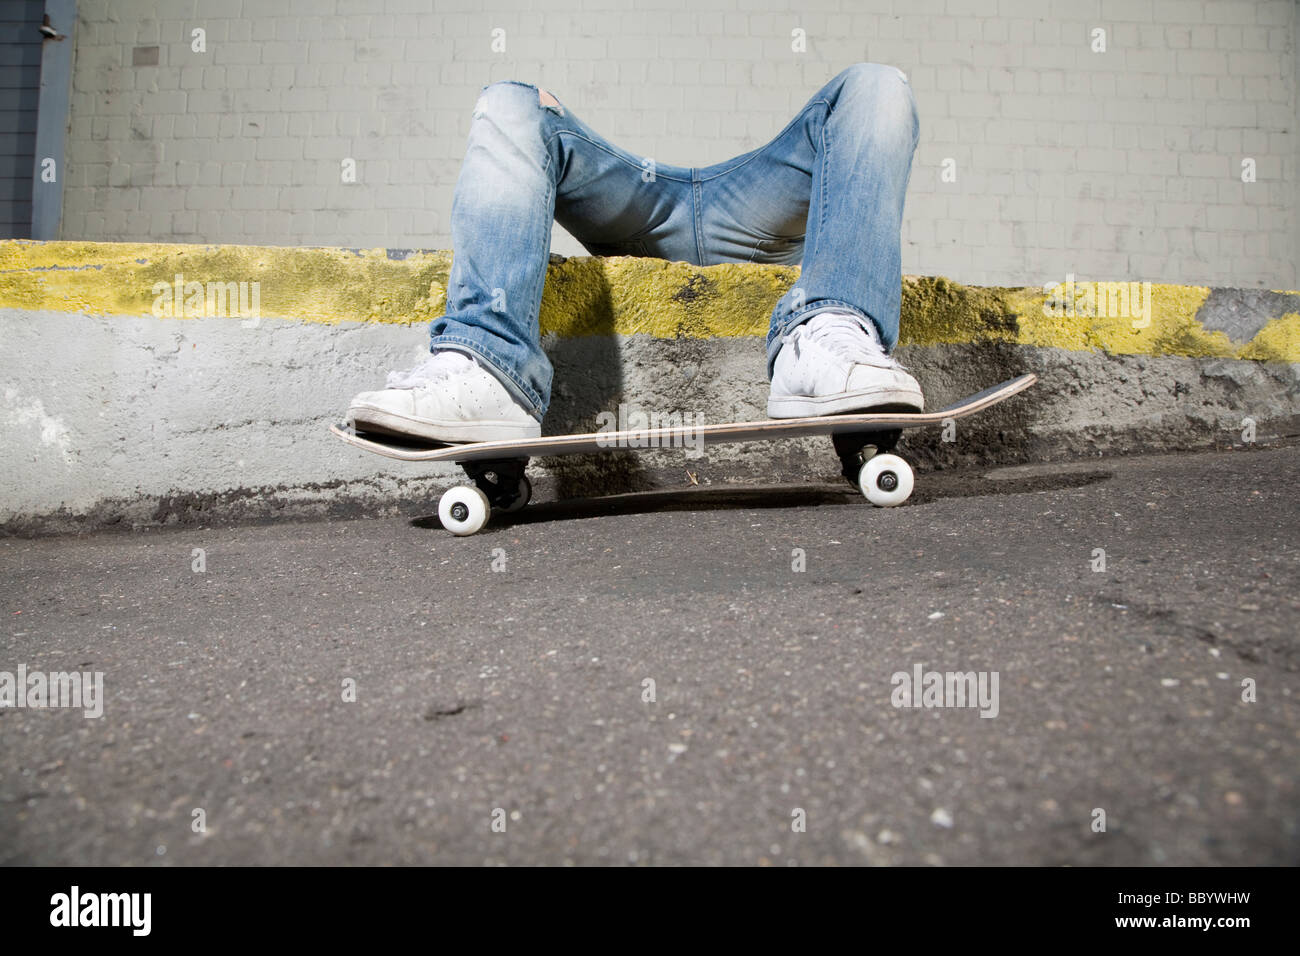 Skateboarder lying on his back, exhausted - Stock Image